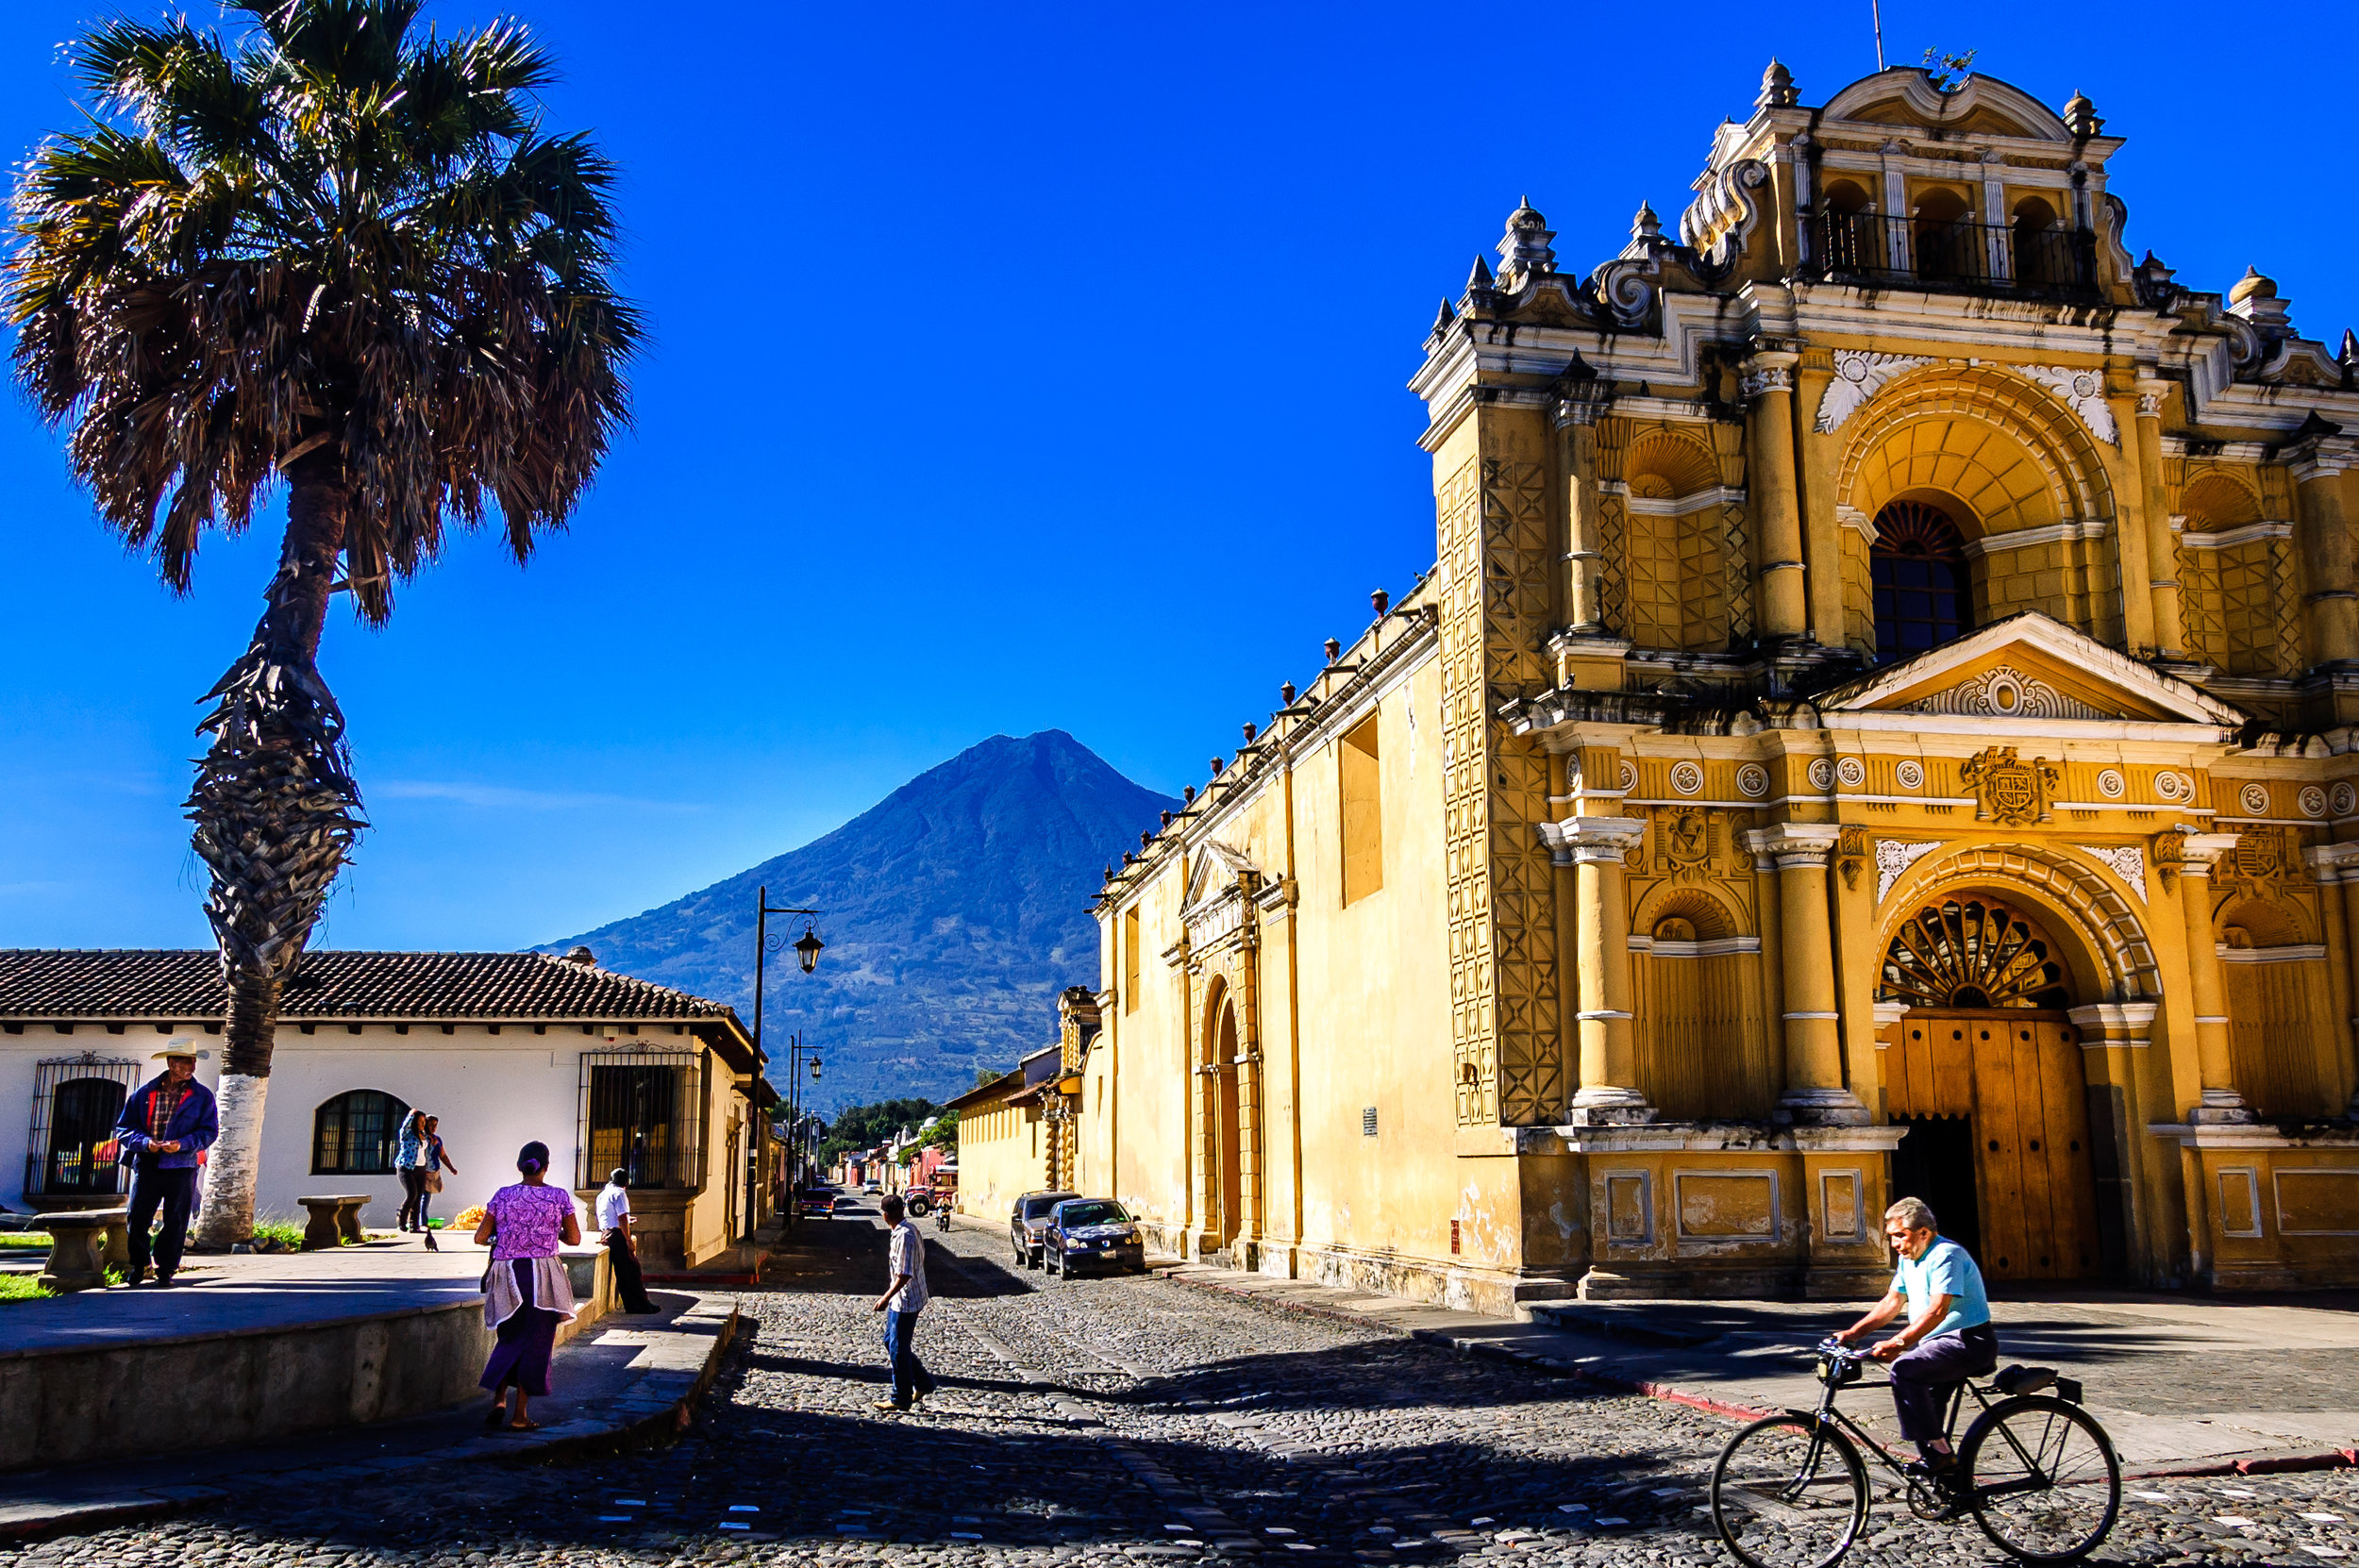 Walking the vibrant colonial streets of Antigua.